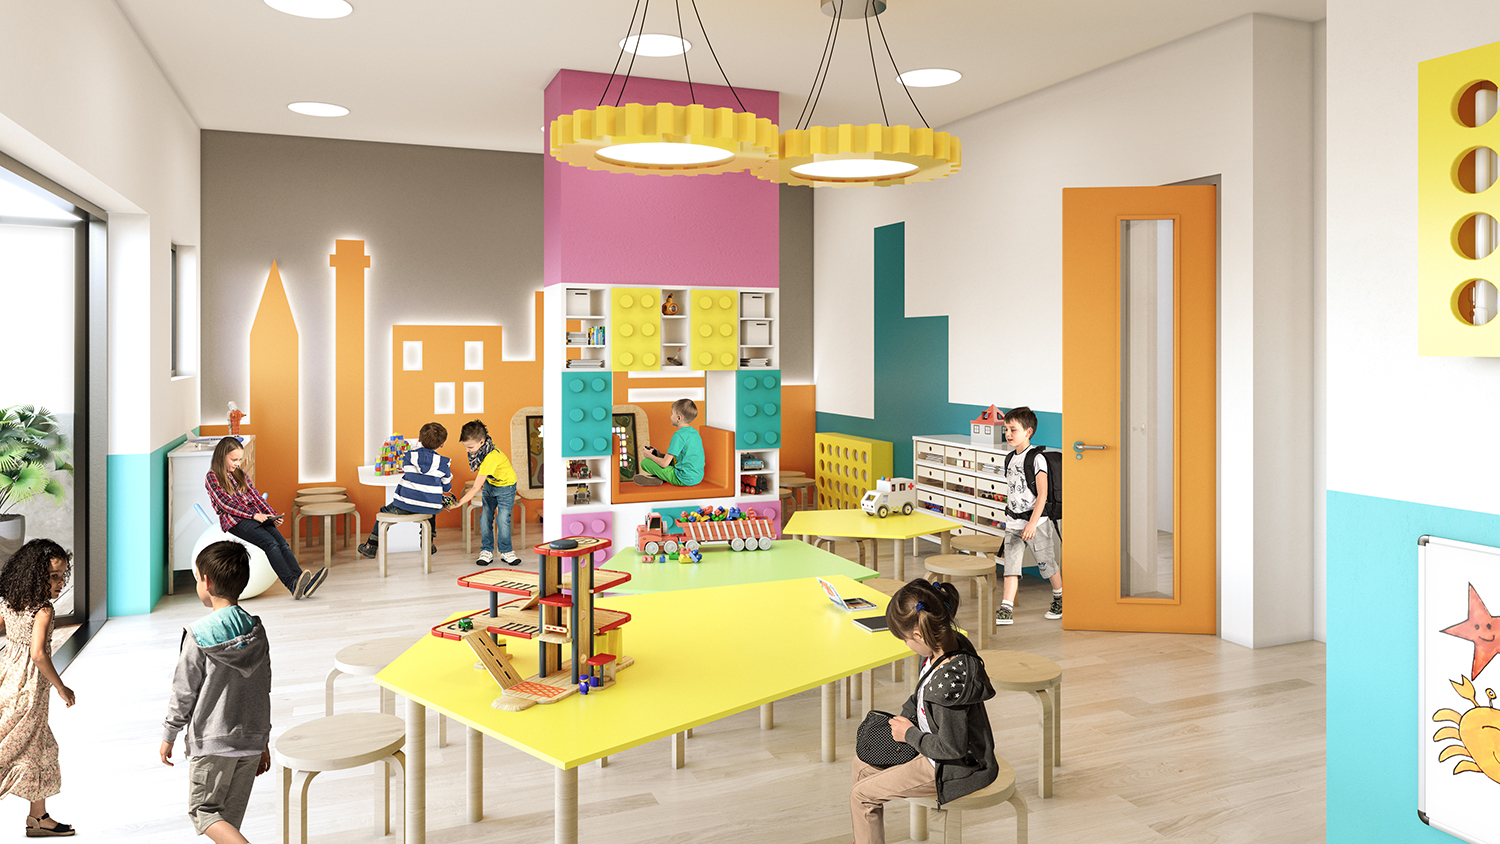 Little Pumpkins Day Nursery Design – East Croydon